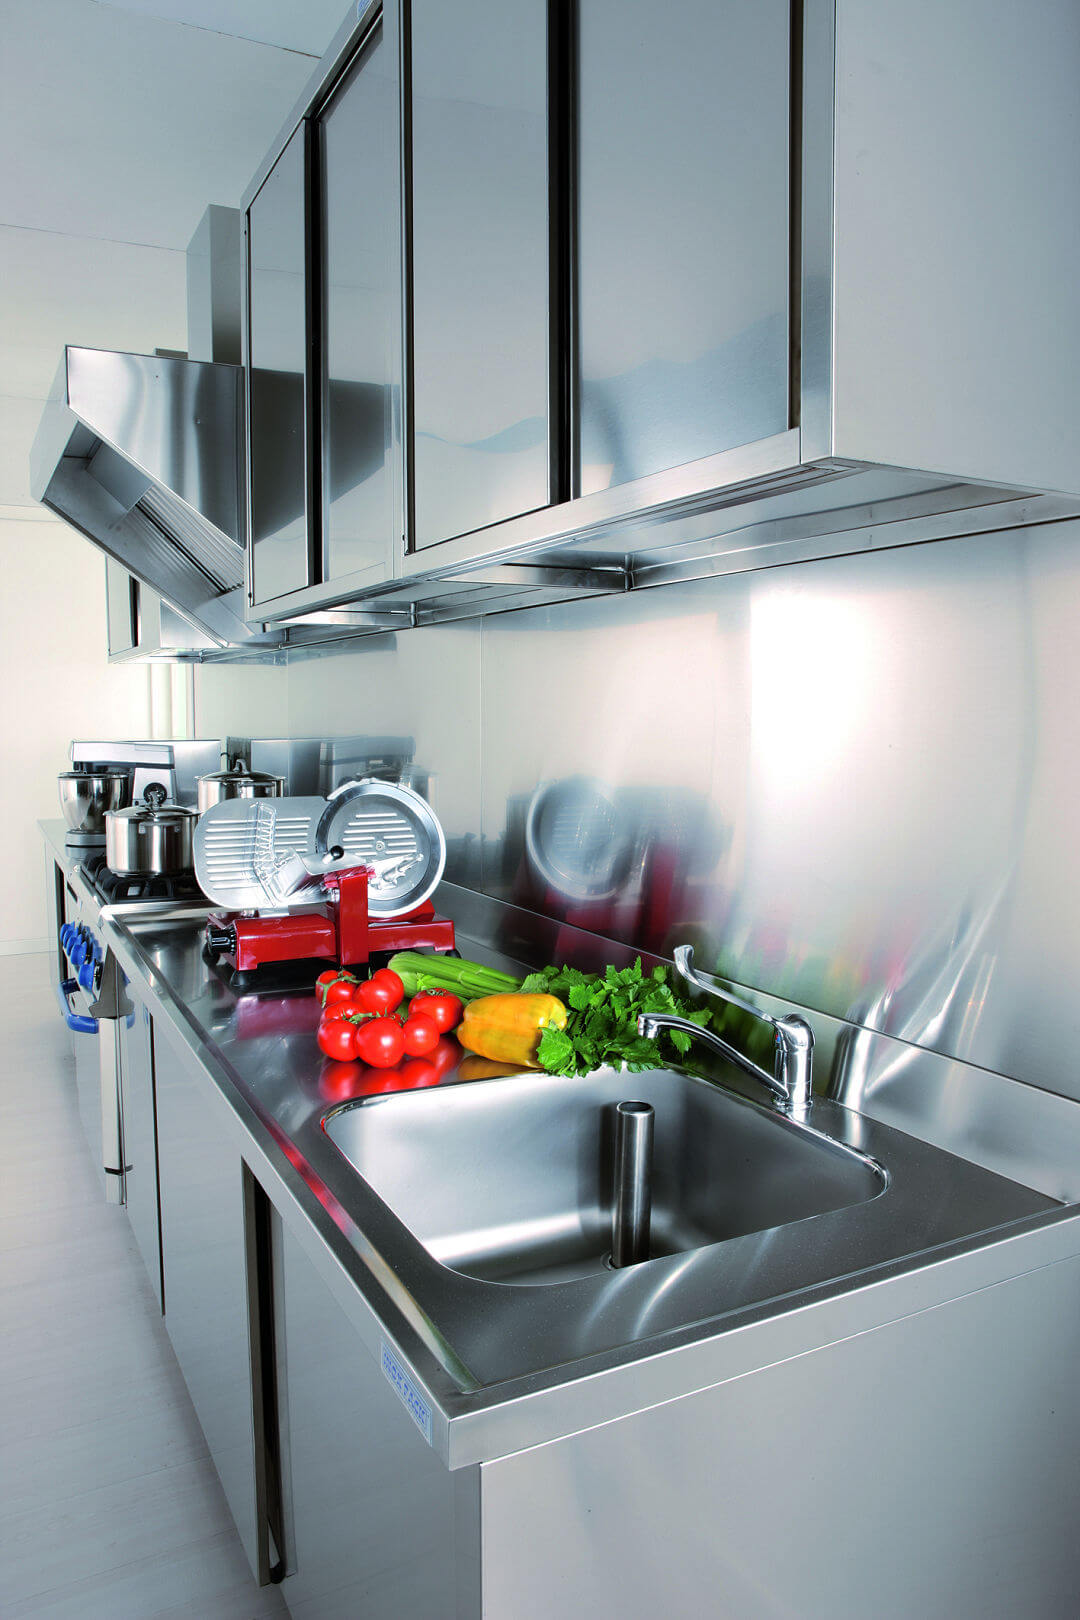 Arca Cucine Italy - Domestic stainless steel kitchens - 12 - Grand Gourmet Chef - Induction and Wall Units